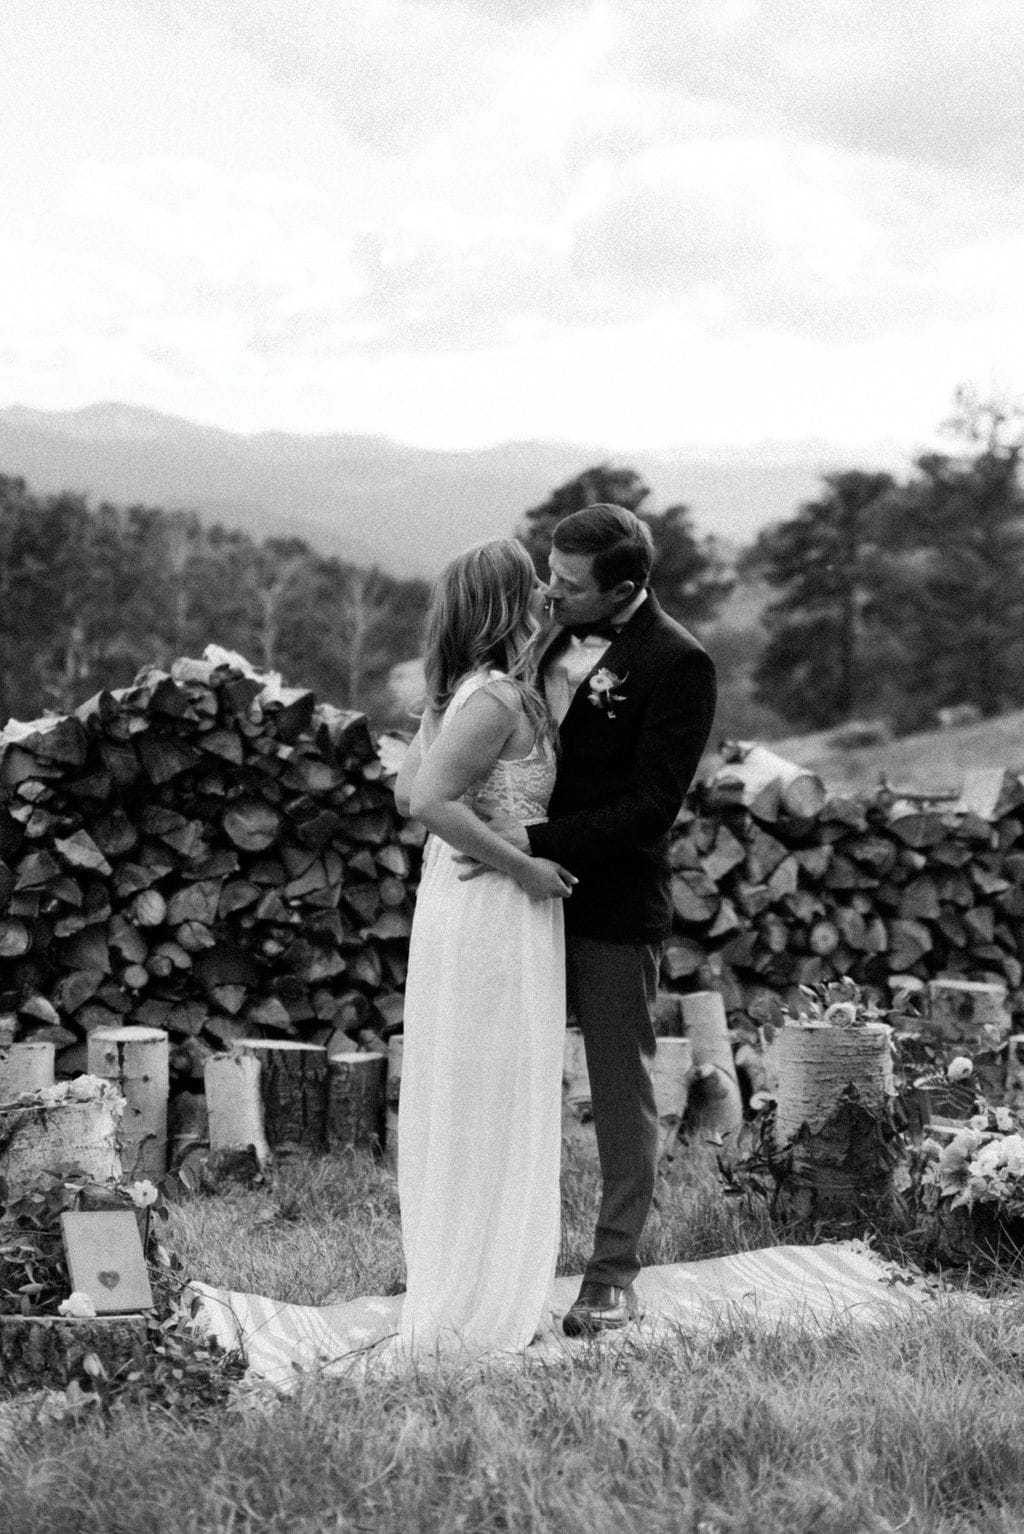 New elopement location for couples in colorado